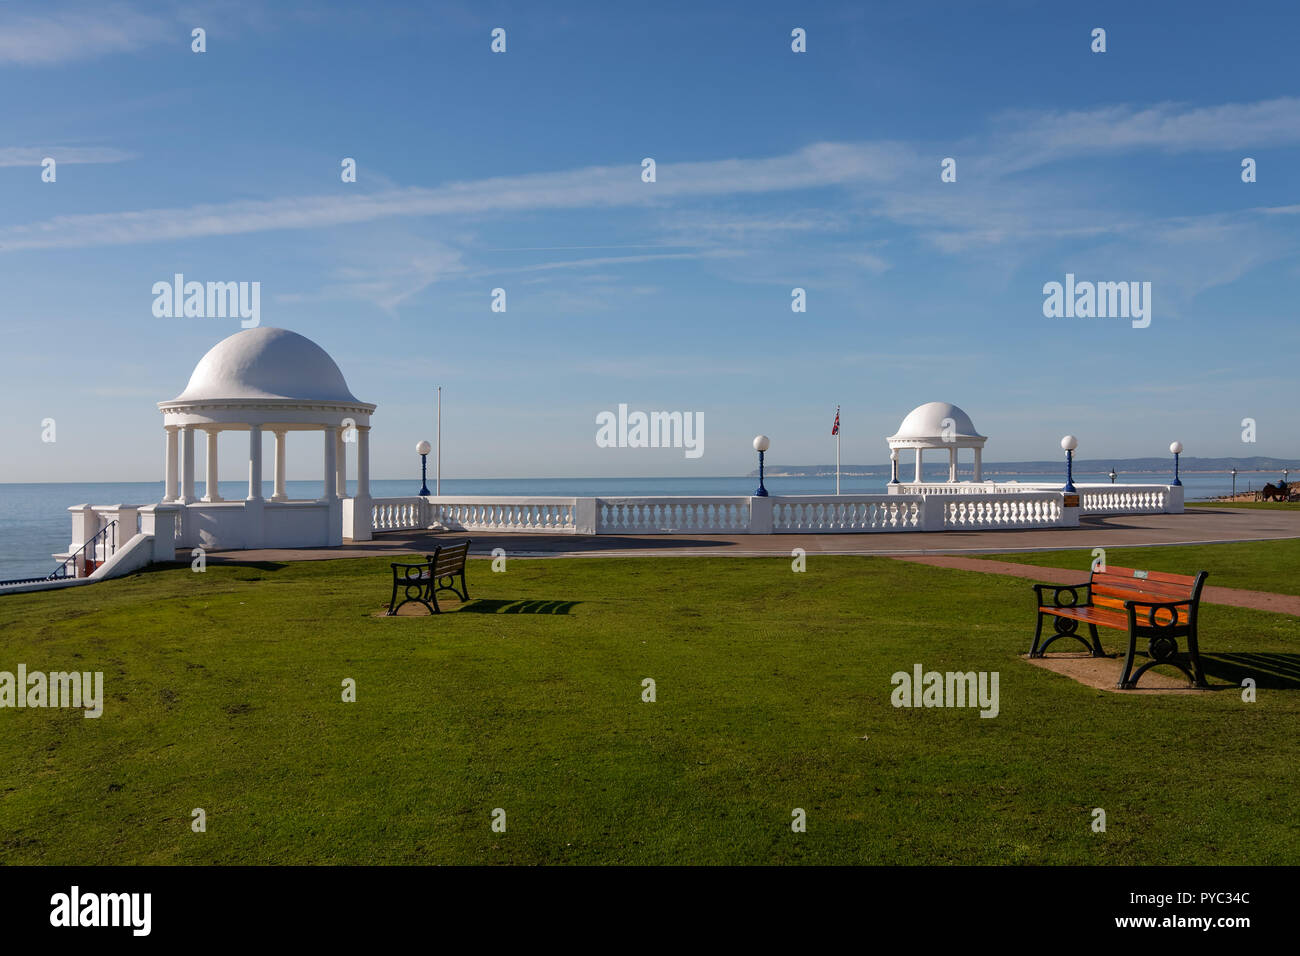 BEXHILL-ON-SEA, EAST SUSSEX/UK - OCTOBER 17 : Colonnade in grounds of De La Warr Pavilion in Bexhill-On-Sea on October 17, 2008. Two unidentified people - Stock Image